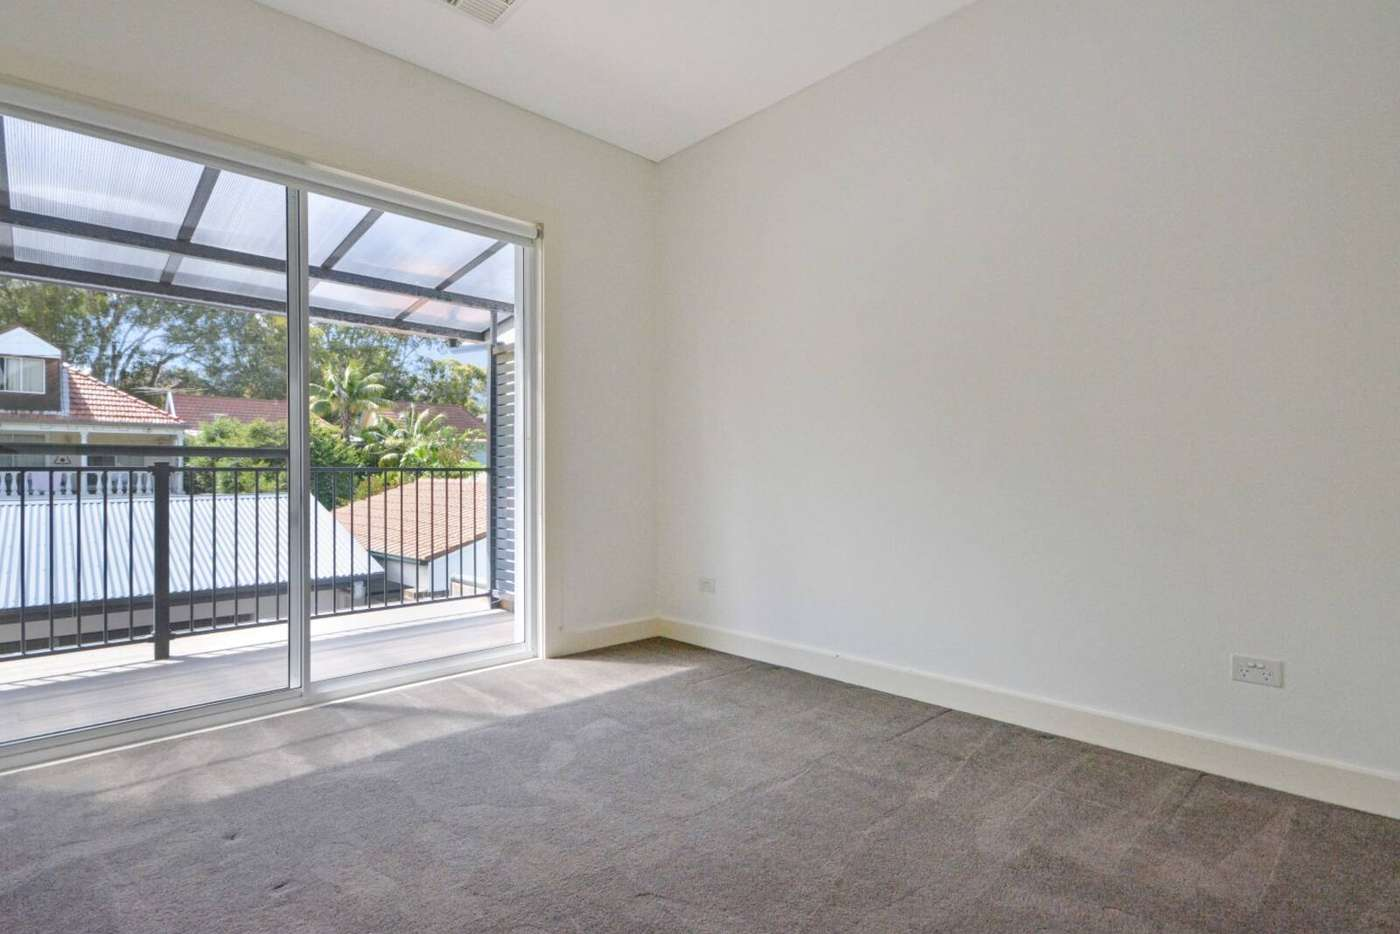 Seventh view of Homely house listing, 124 Newland Street, Queens Park NSW 2022